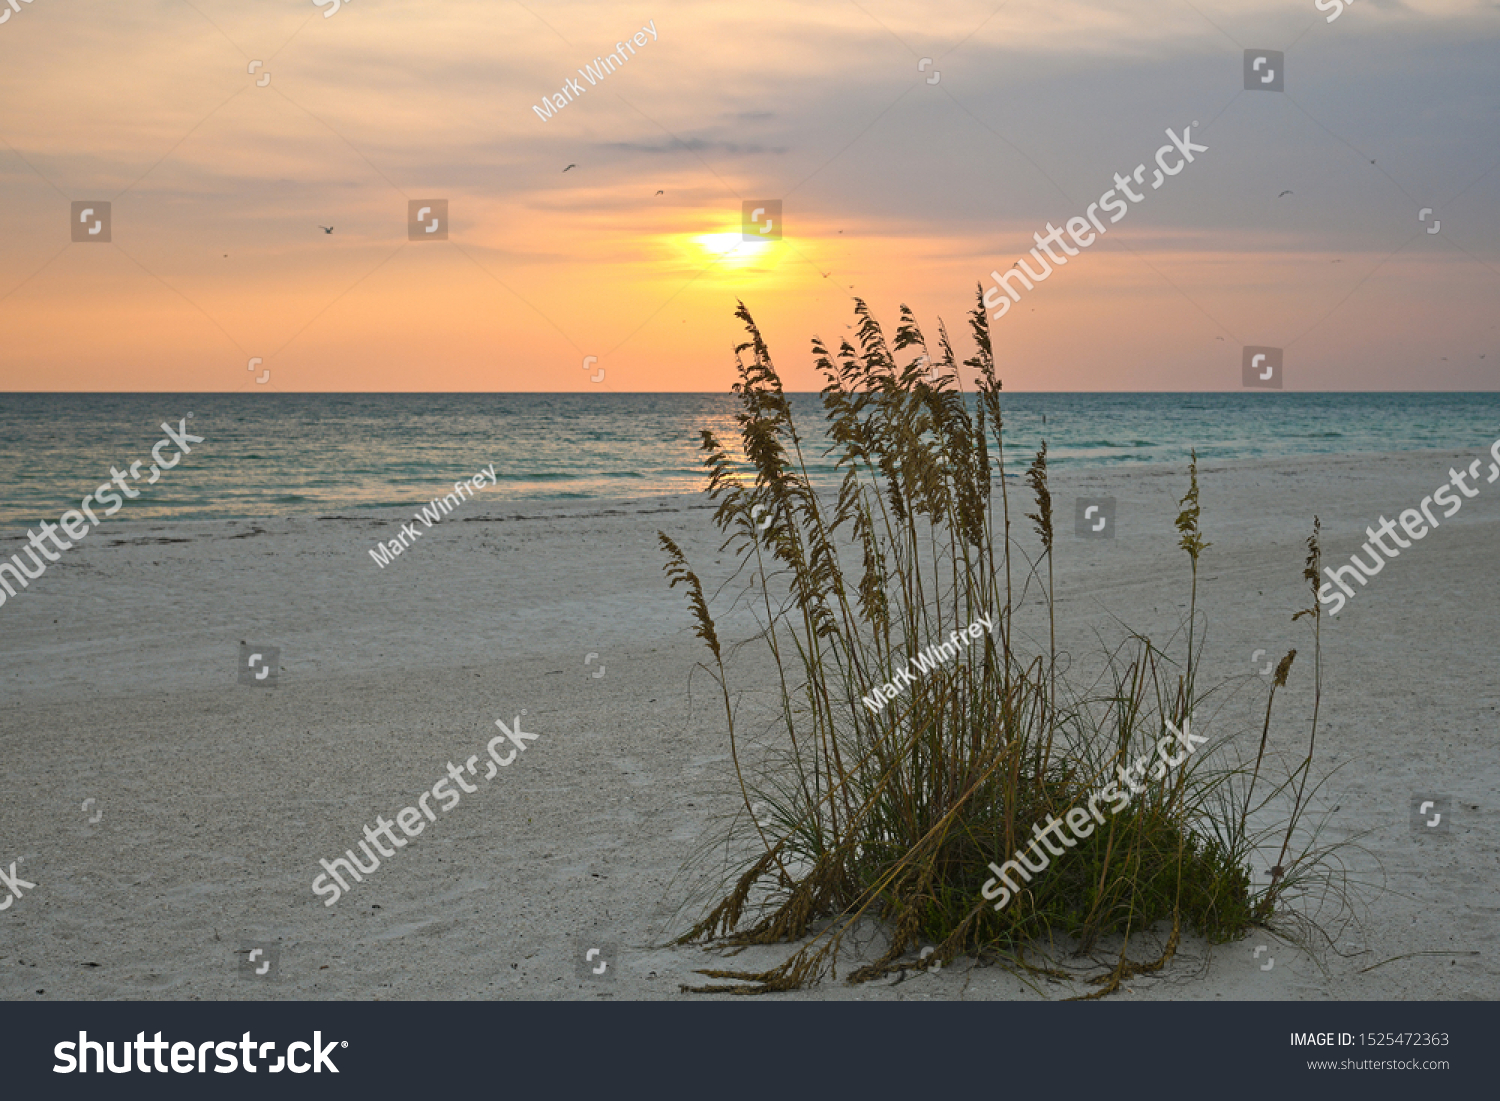 A Beautiful Sunset on the Gulf Coast of Florida